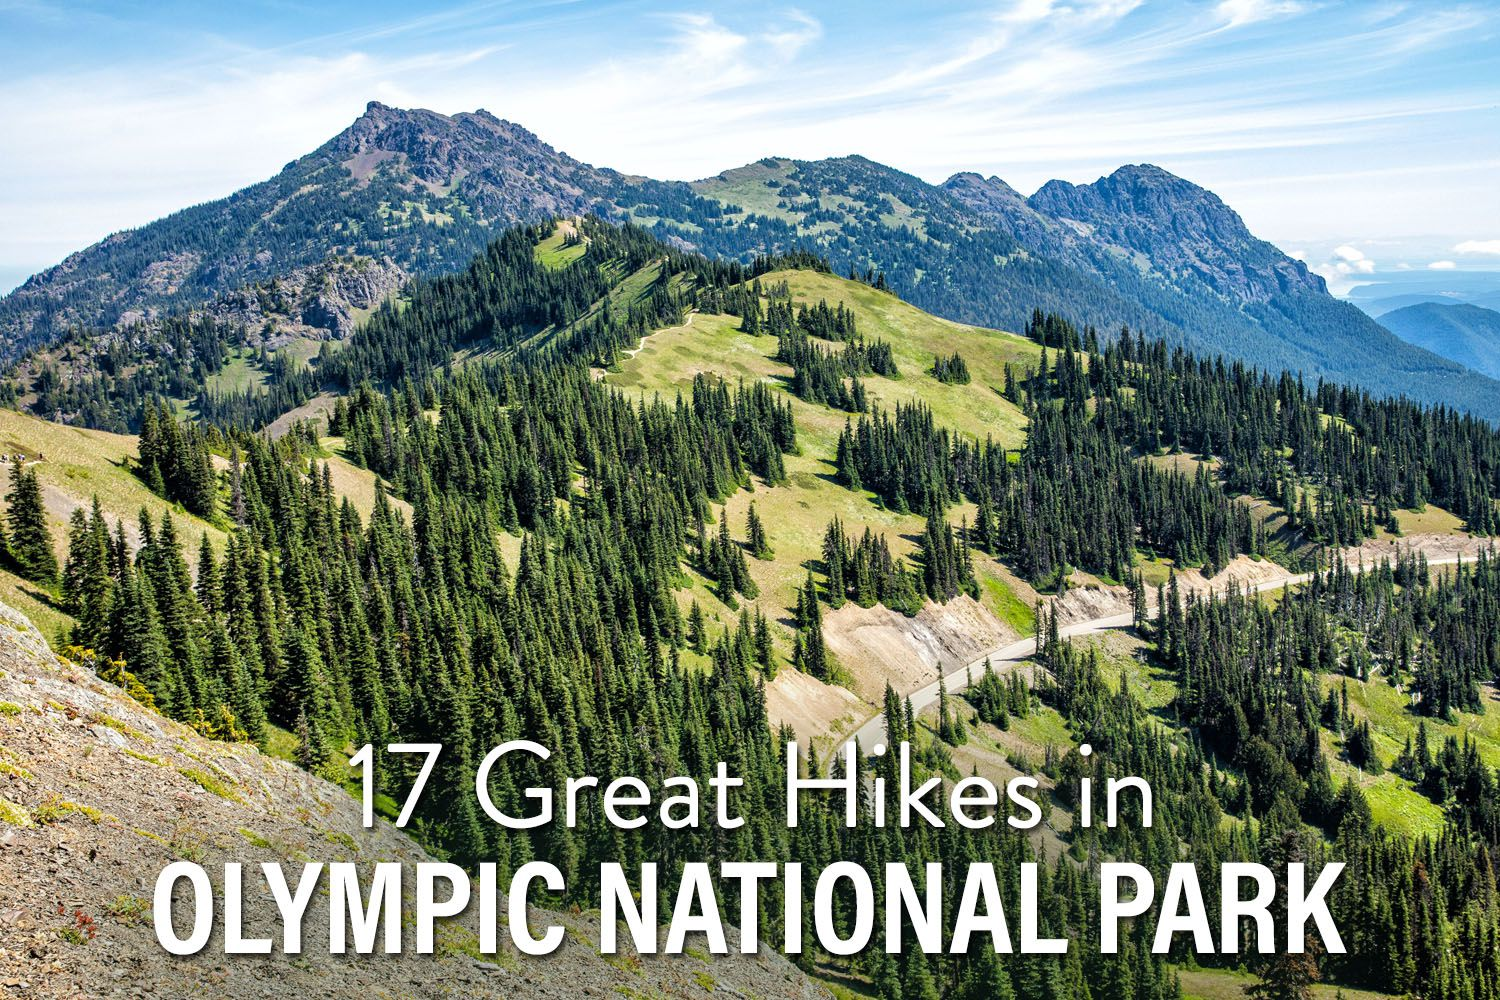 Hikes in Olympic National Park